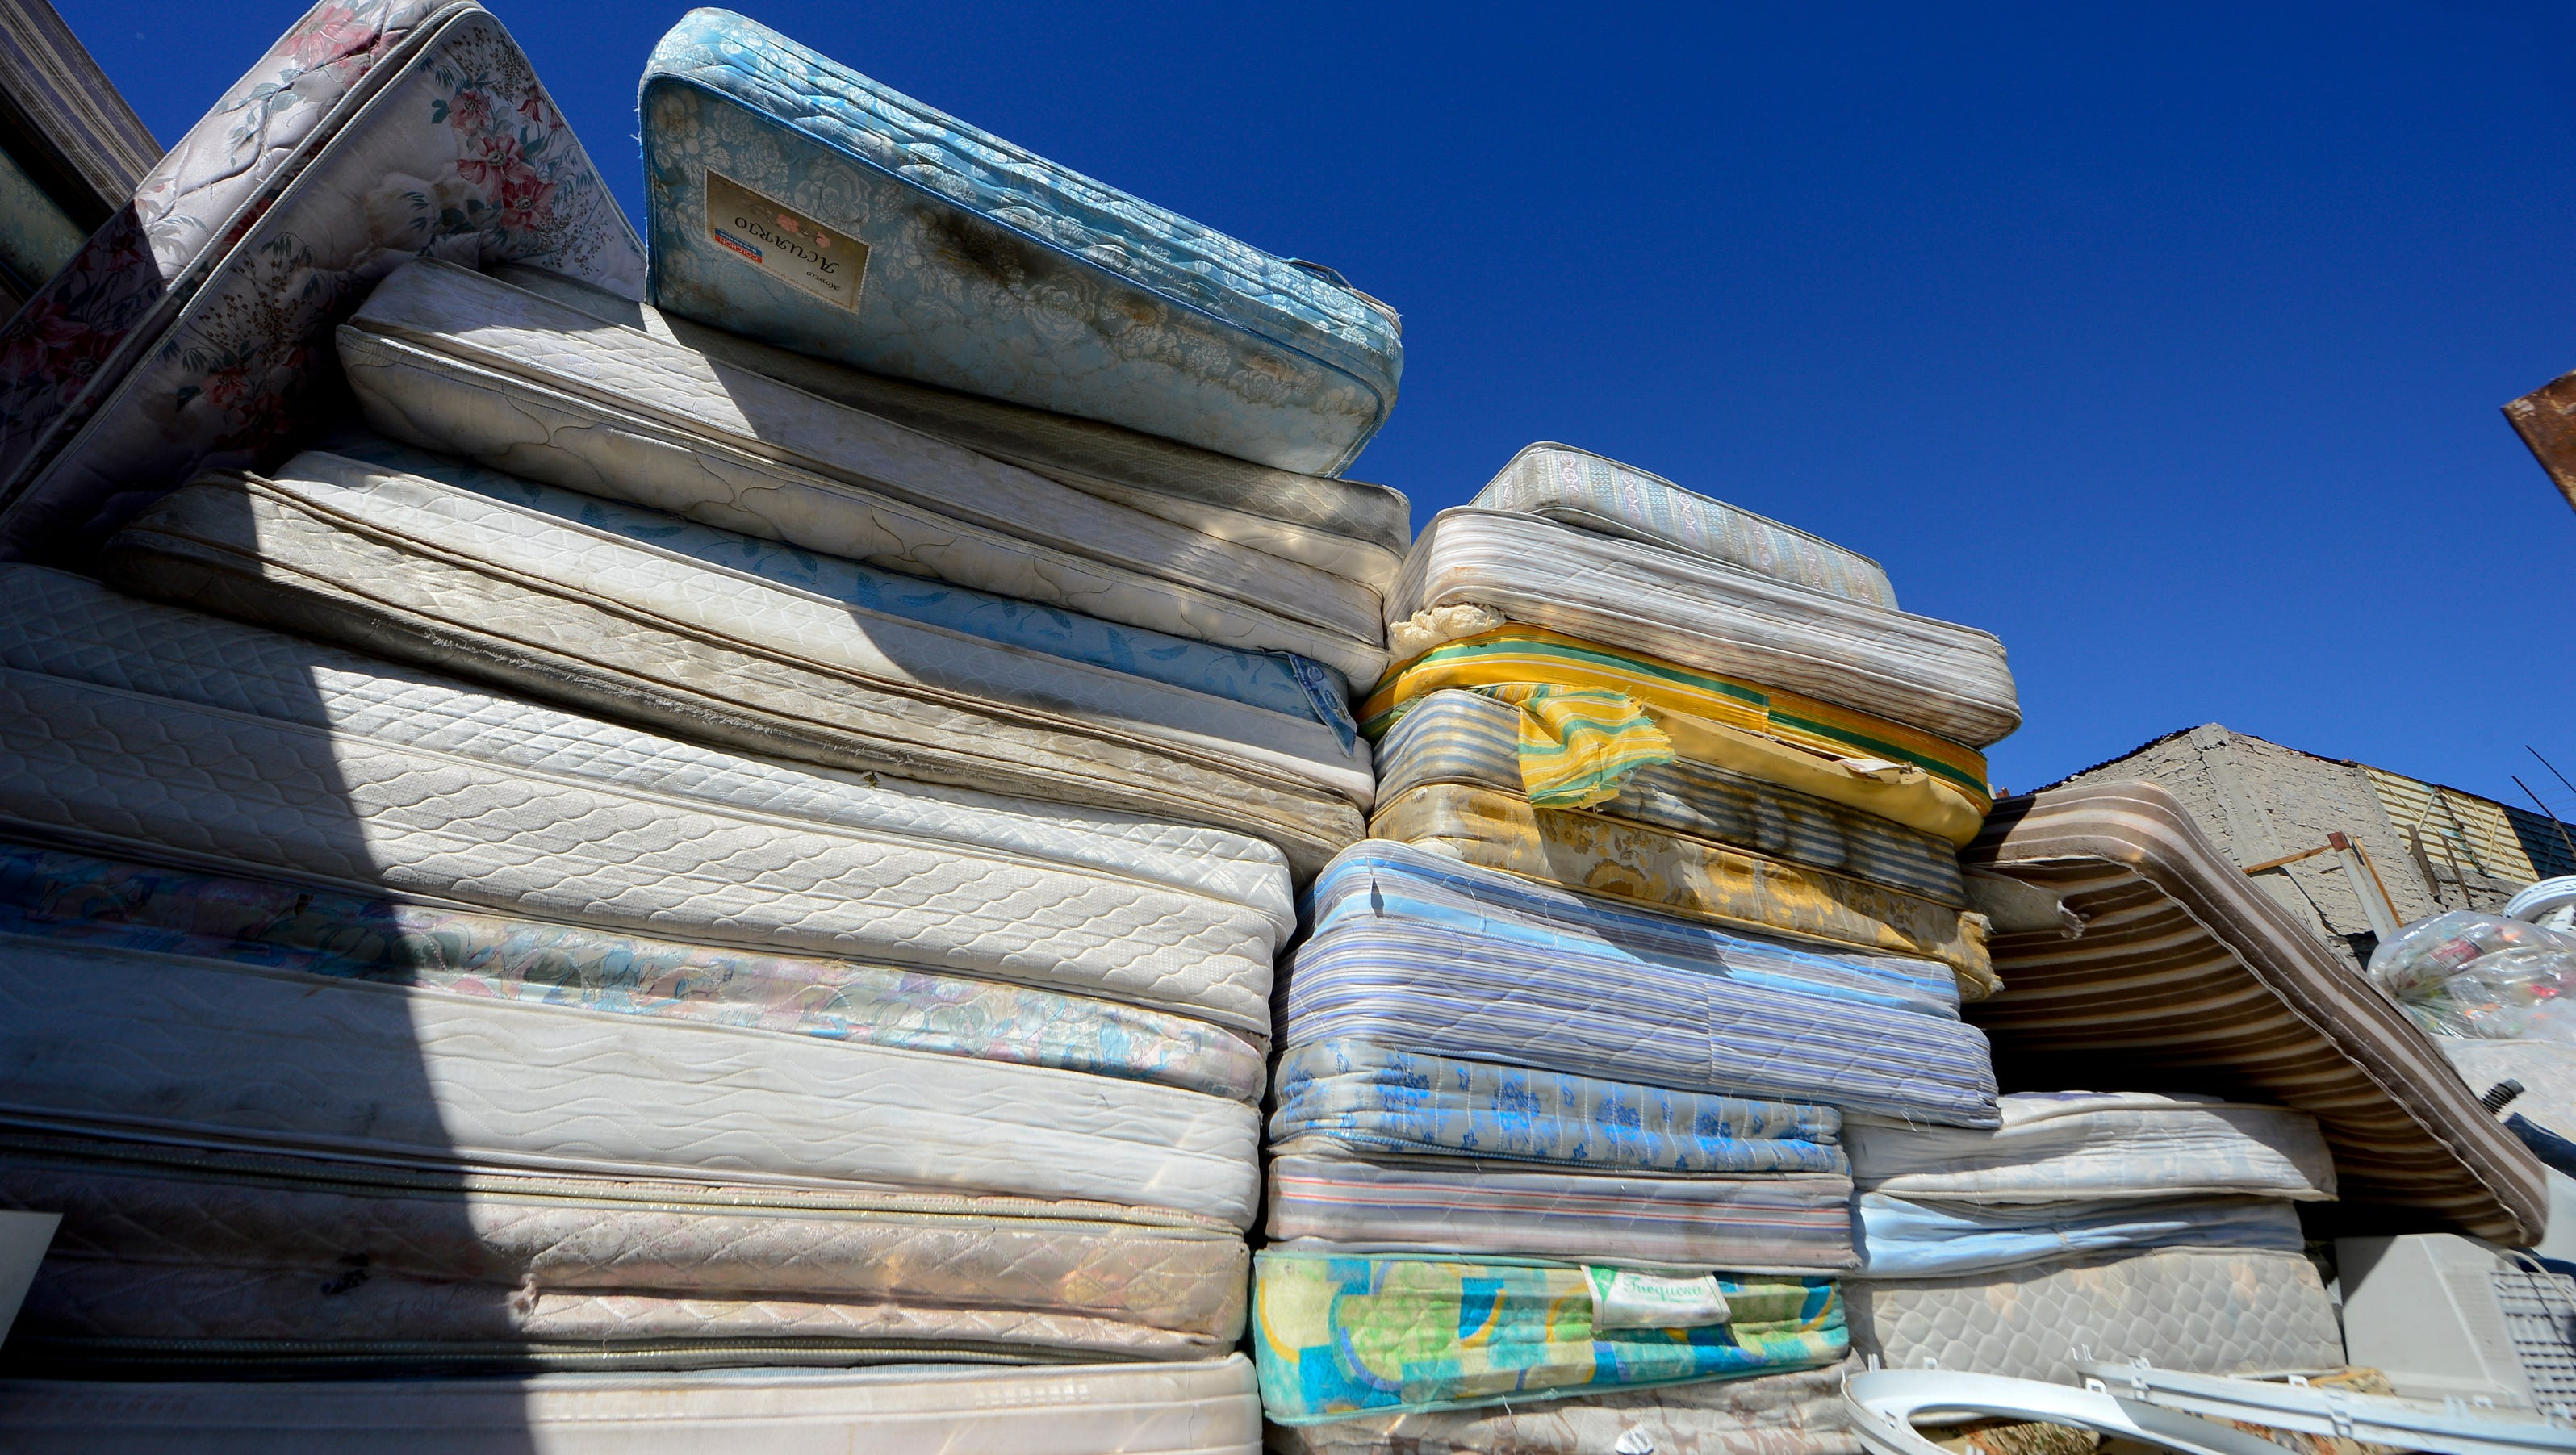 Mattress Recycling : Minneapolis considers statewide mattress recycling